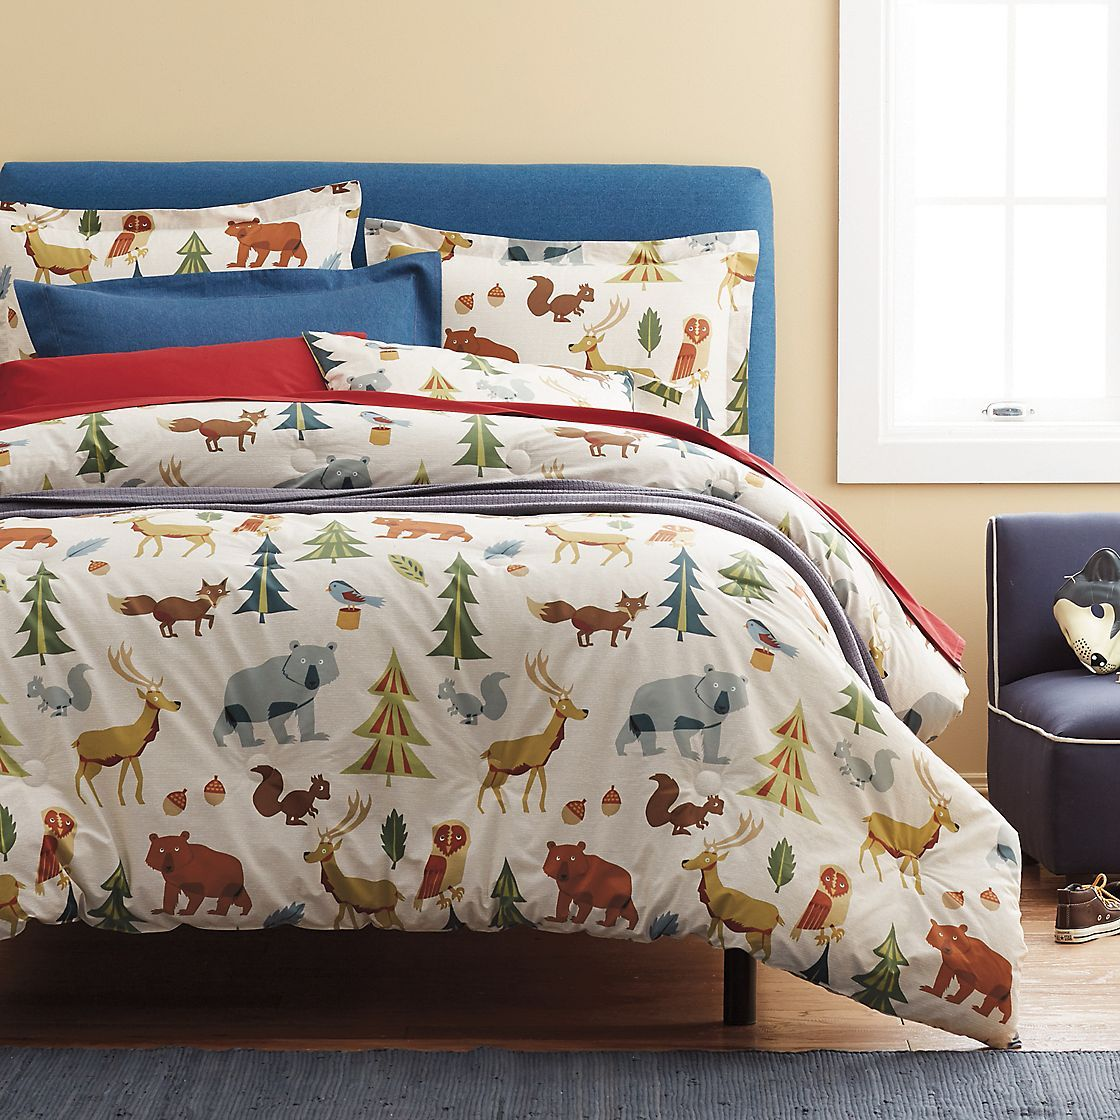 this kids sheet bedding set is covered with all their favorite forest friends made from soft count cotton percale